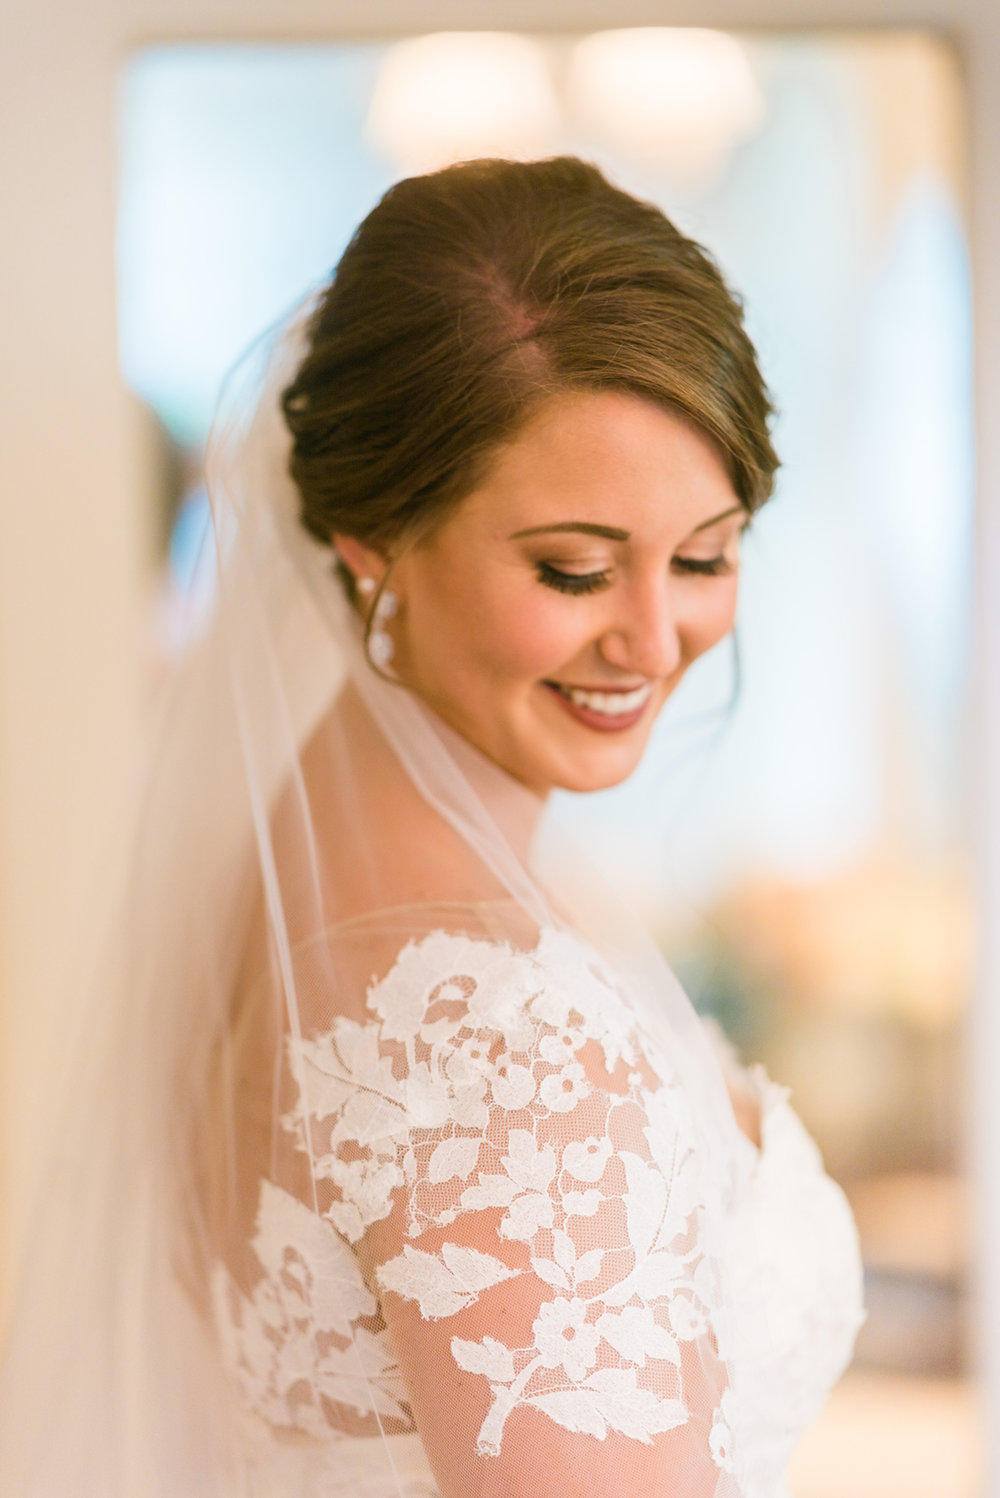 Lace Wedding Dress - A Philander Chase Knox Estate Pennsylvania Wedding